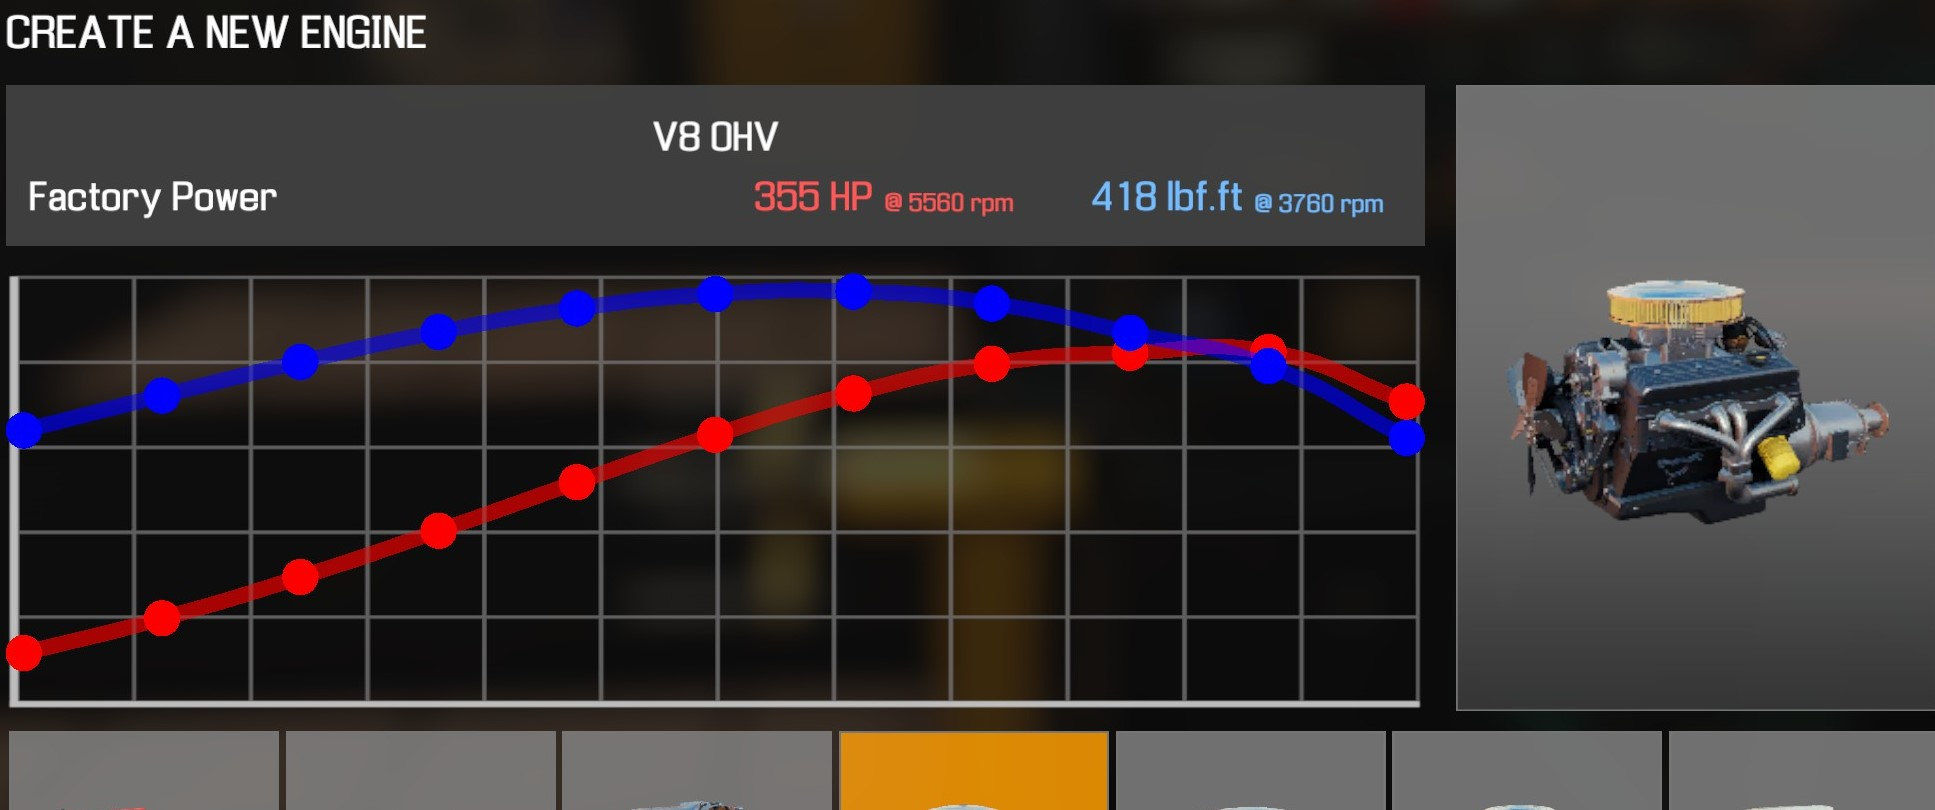 Car Mechanic Simulator 2021 - How to Buy Engine Parts and All Engines in Game Information - V8 OHV - 5477BAA